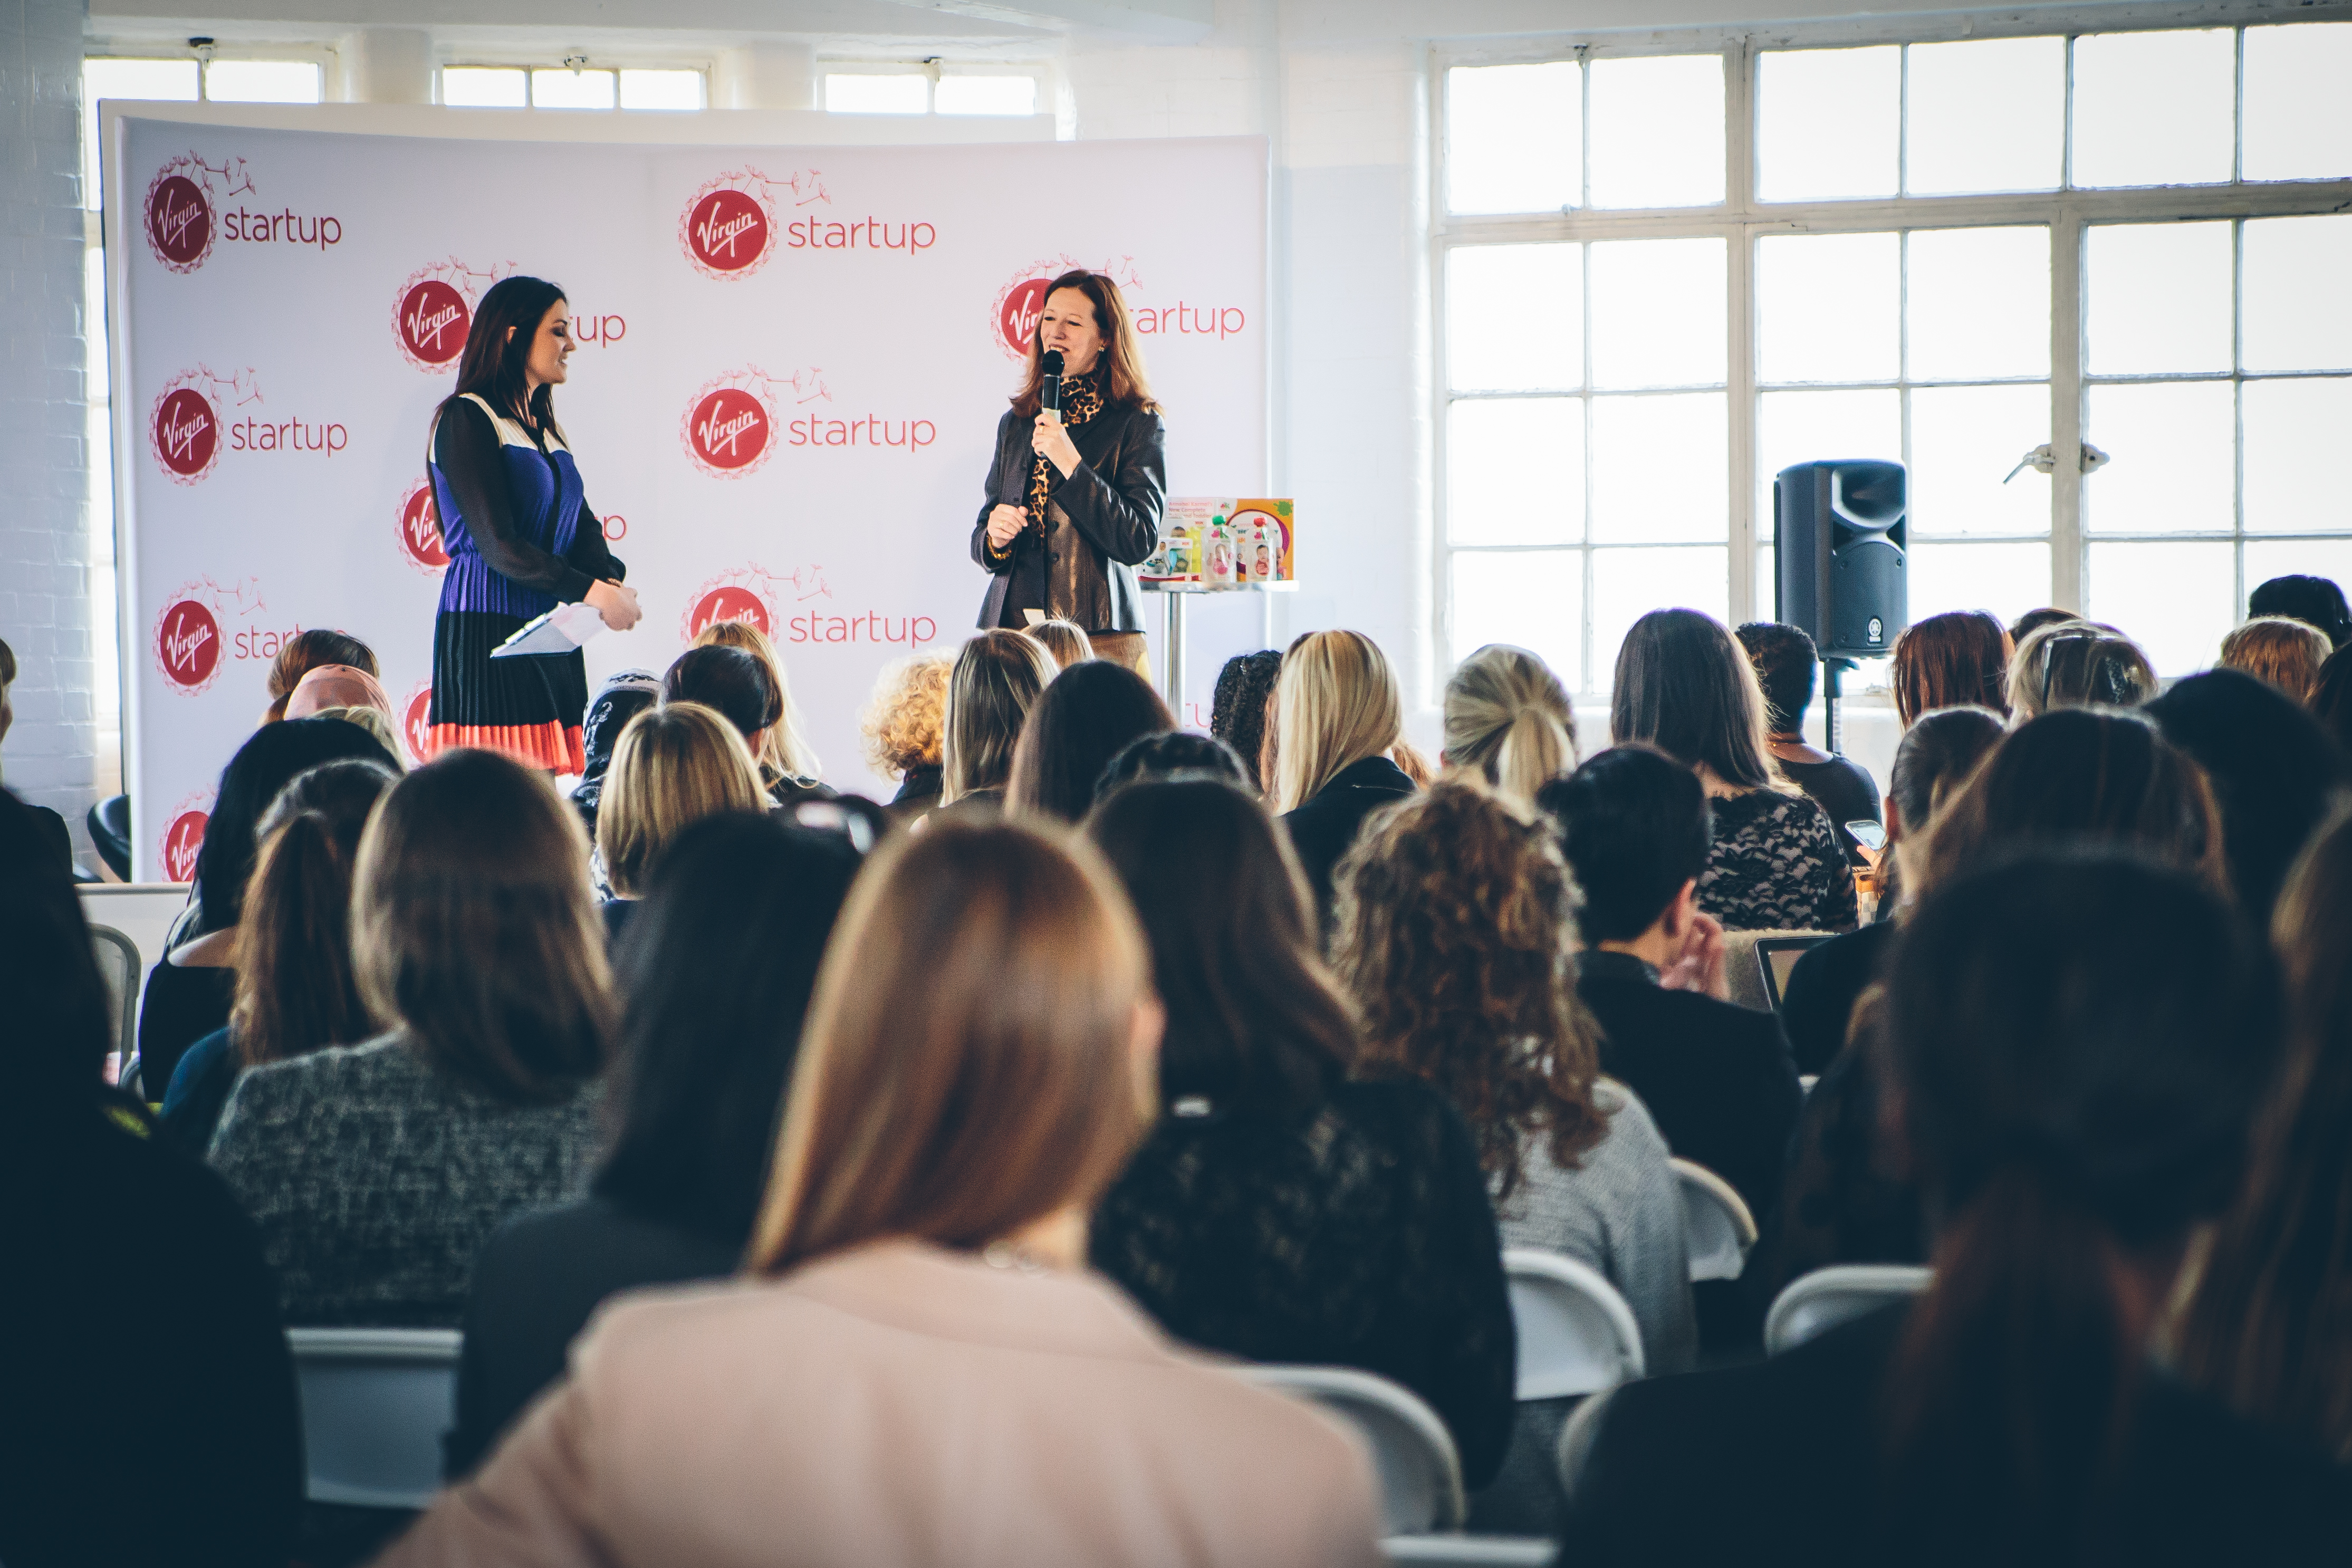 Virgin StartUp - What female entrepreneurs want to see